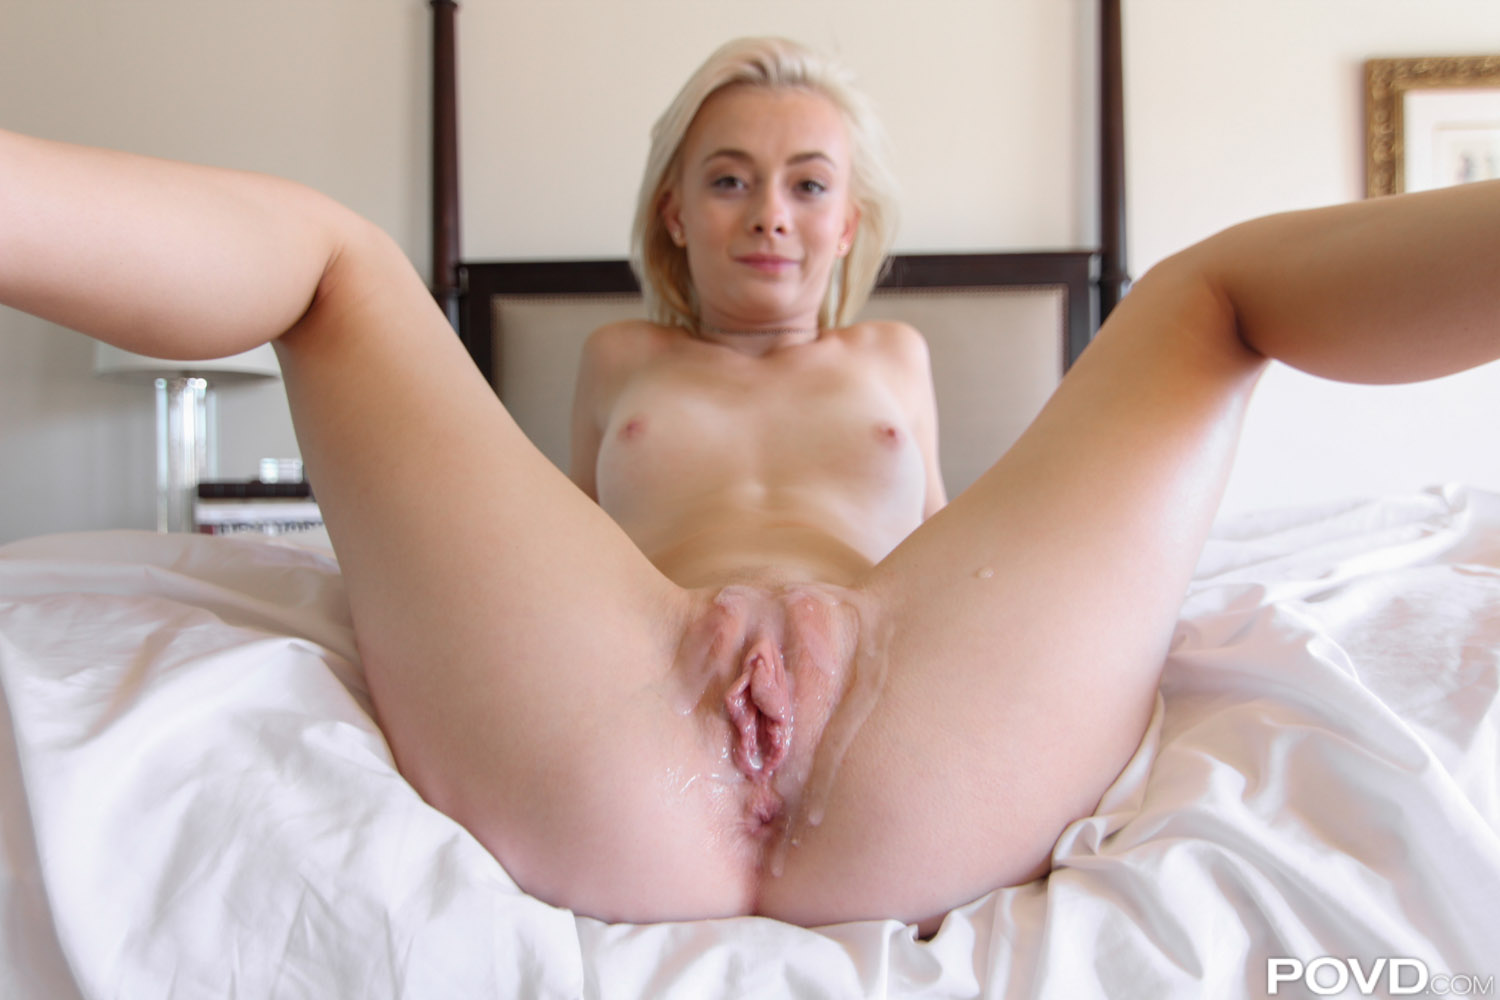 Petite blond amateur chloe foster plays with herself at home 2